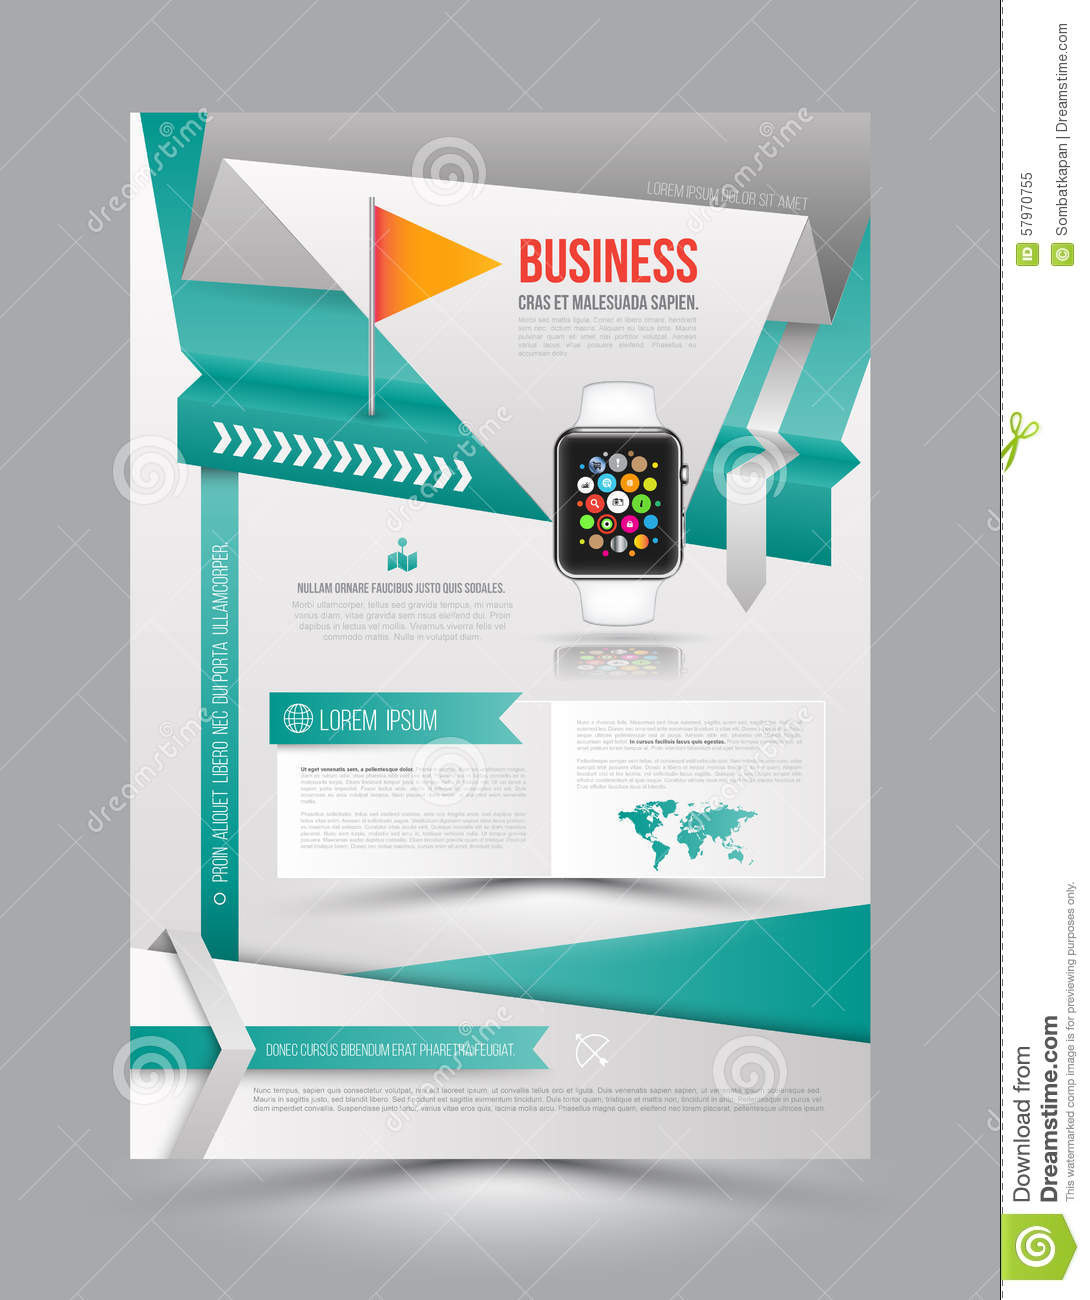 abstract paper origami design vector template layout magazine brochure flyer booklet cover annual report size 57970755 Top Result 60 Inspirational Paper Ad Design Templates